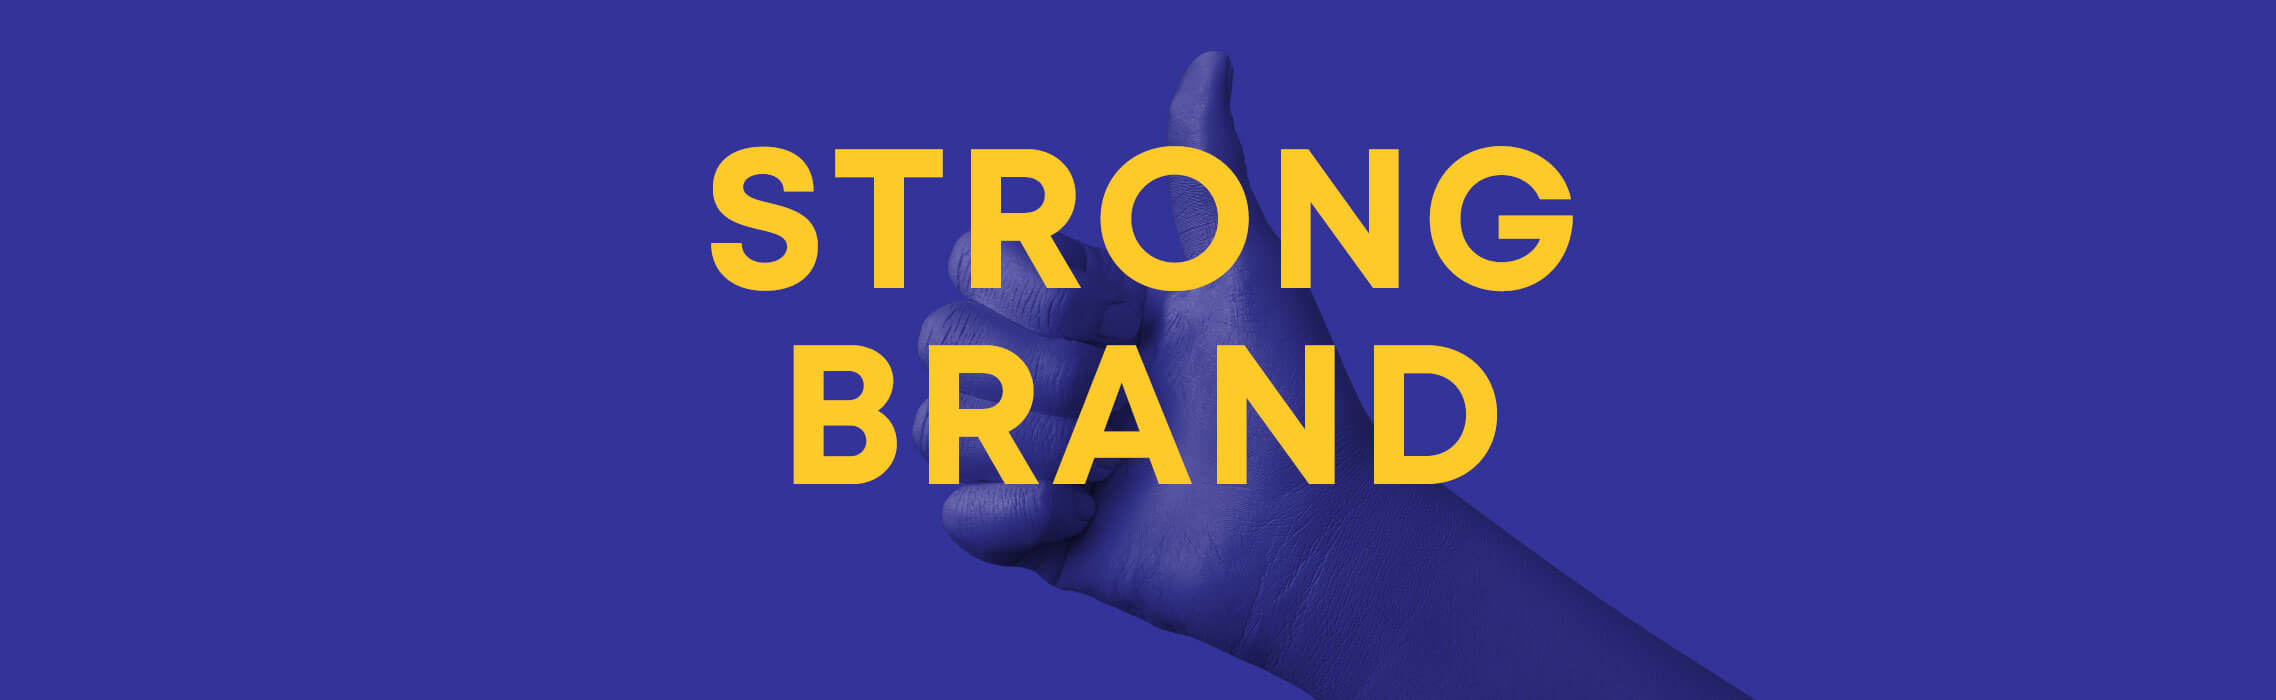 How to Empower your Business with a Strong Brand